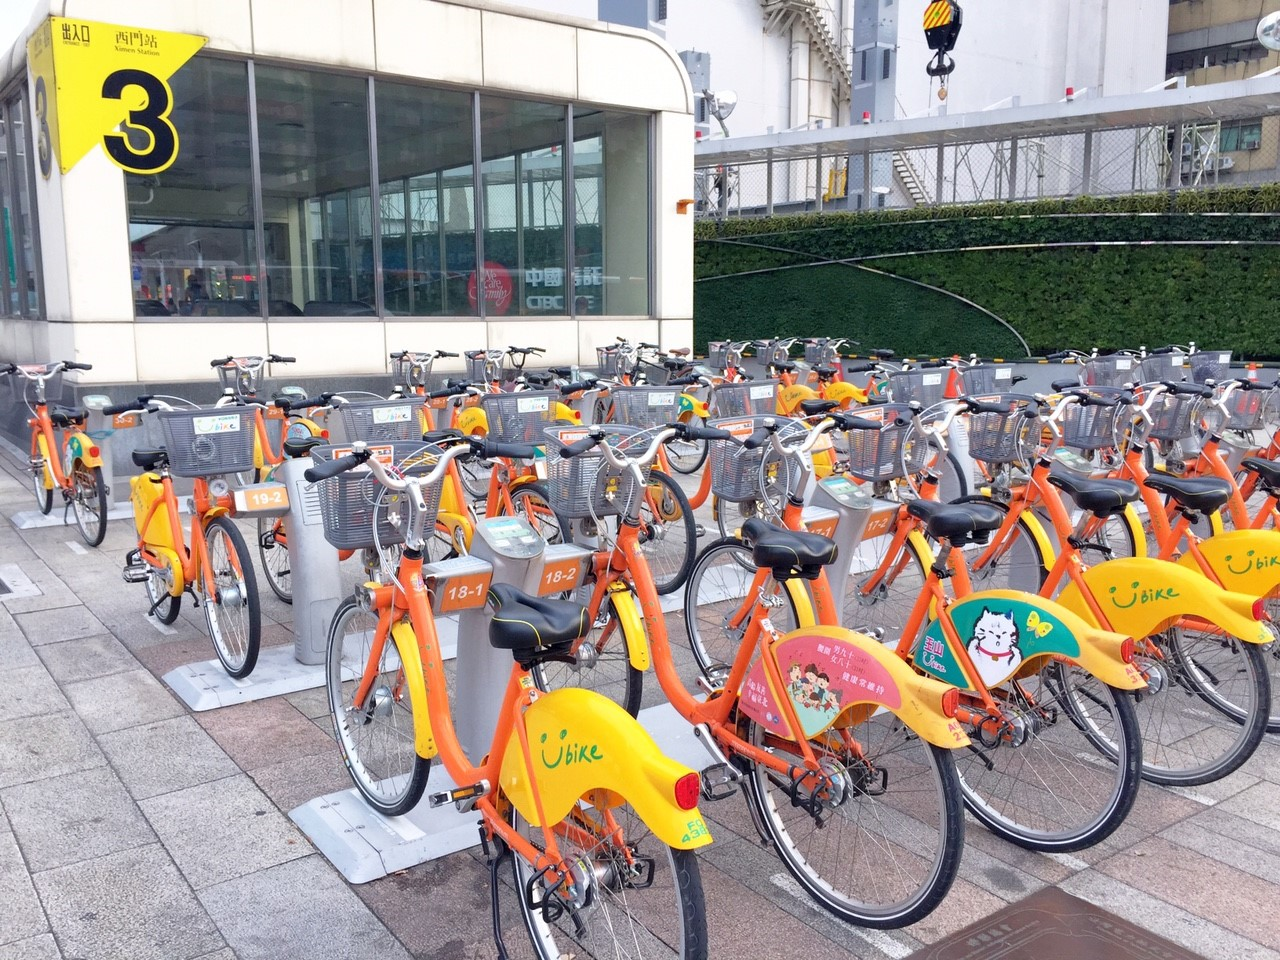 How to start your first trip by UBIKE in Taipei?